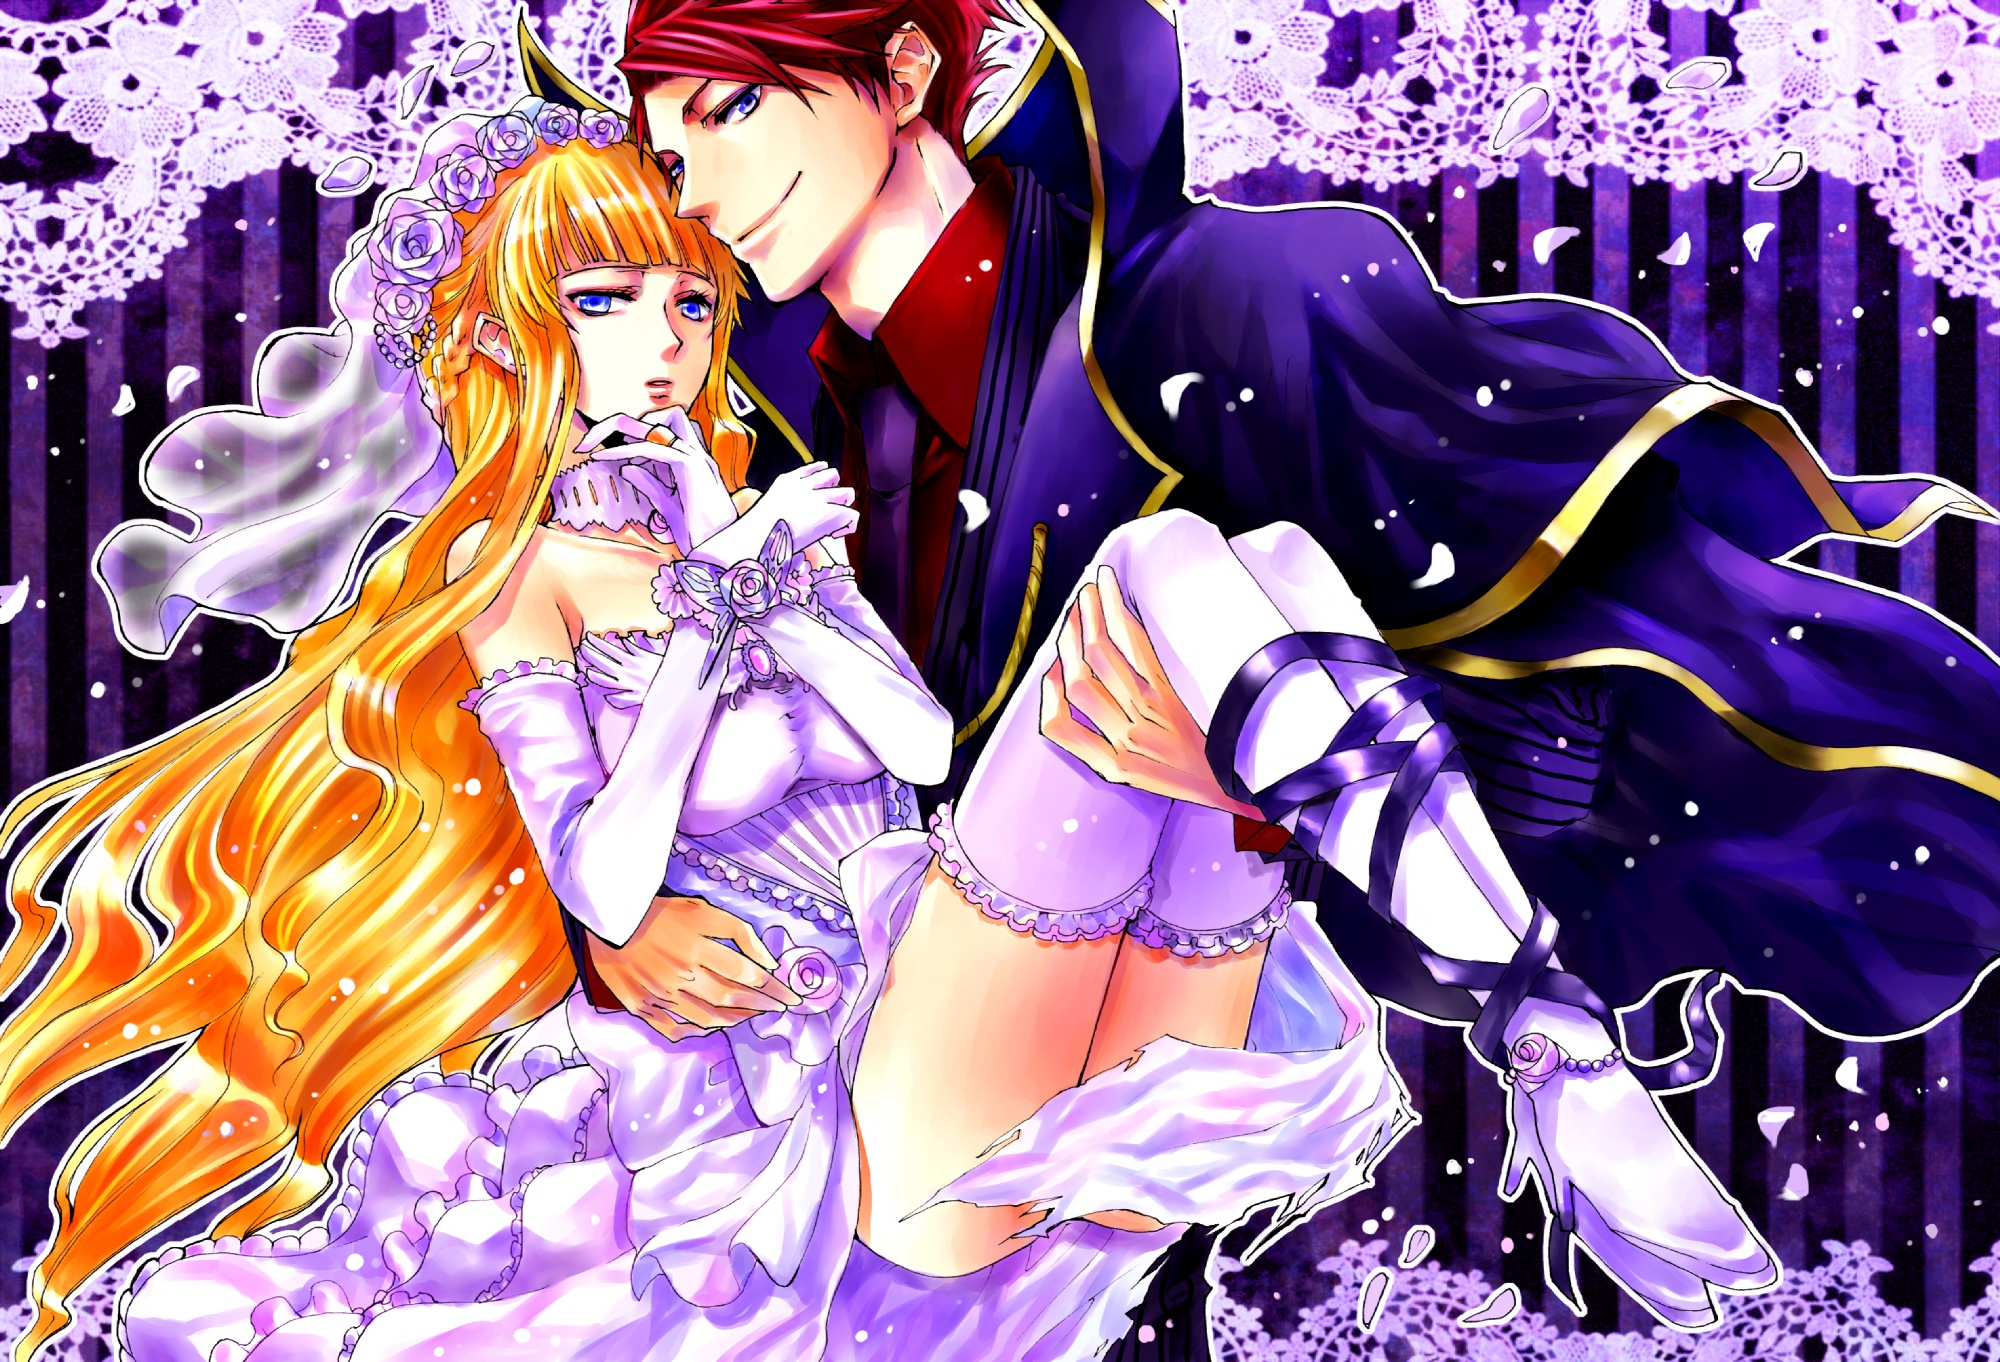 beatrice thighhighs umineko_no_naku_koro_ni ushiromiya_battler wedding_dress